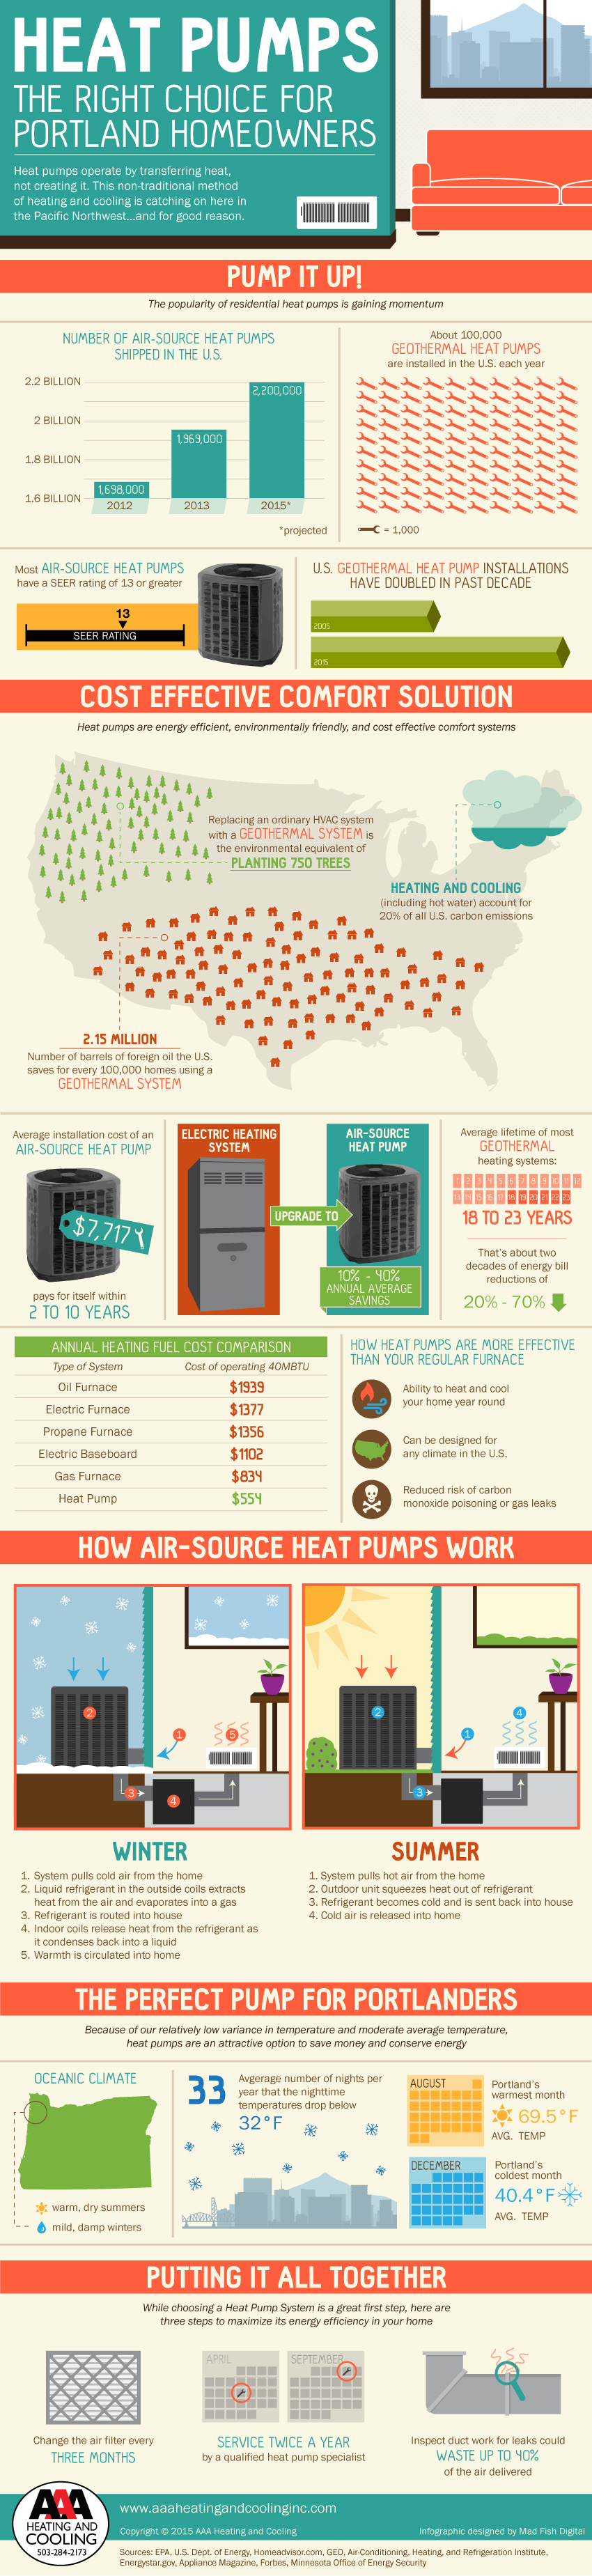 Heat Pumps Are The Right Choice For Portlanders Aaa